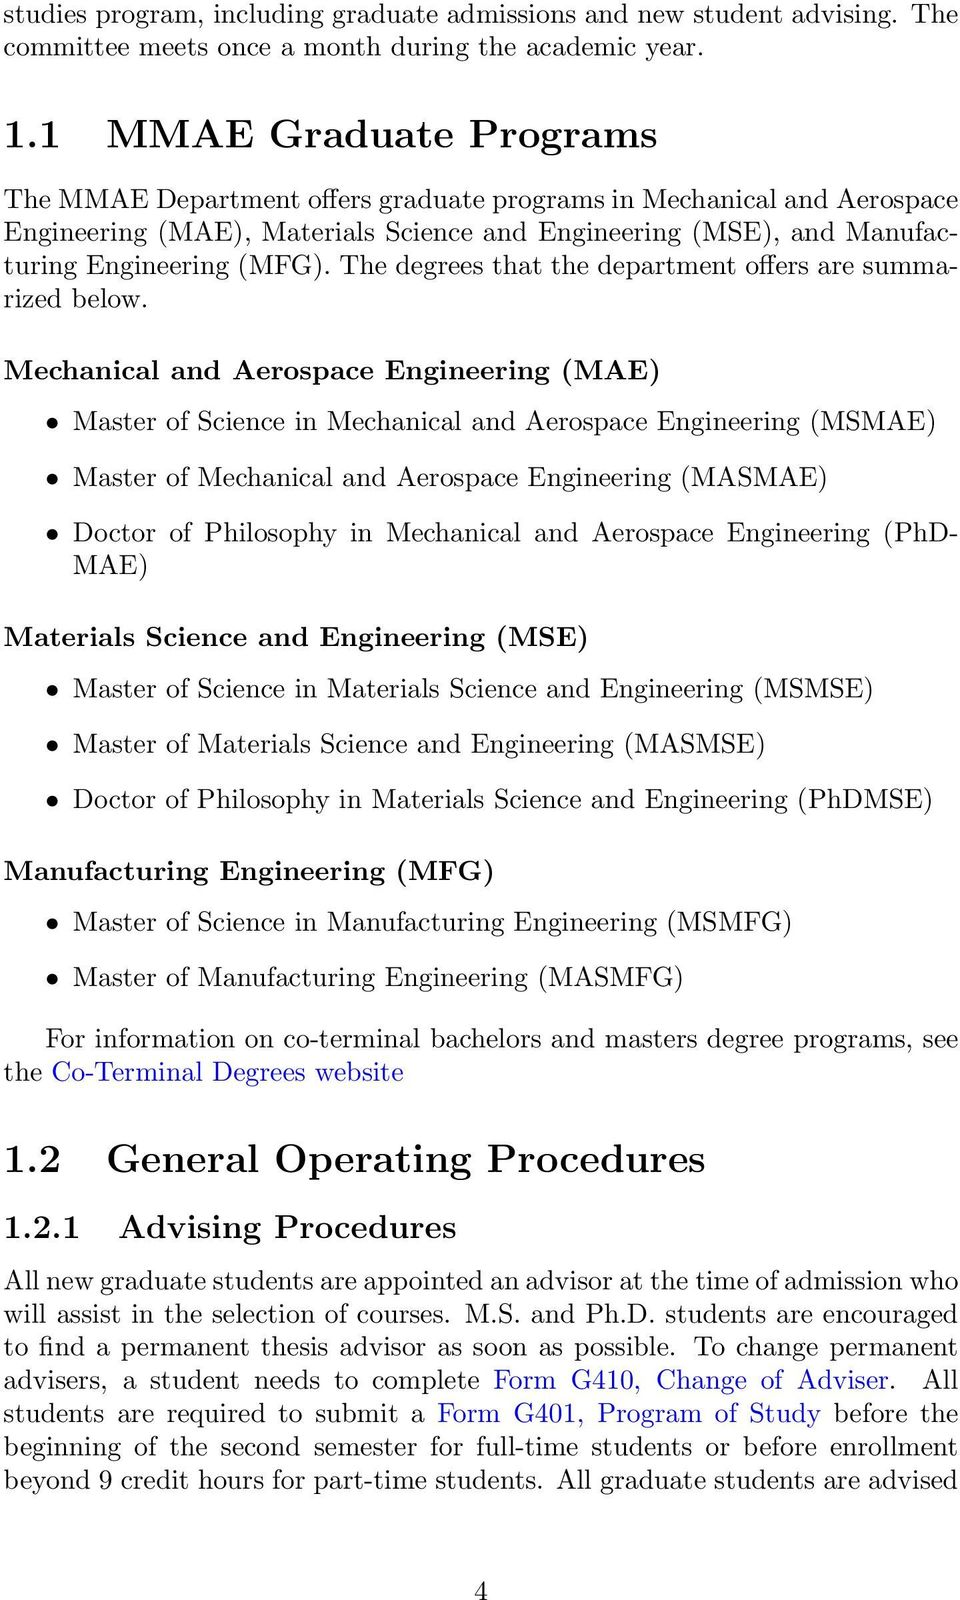 The degrees that the department offers are summarized below.